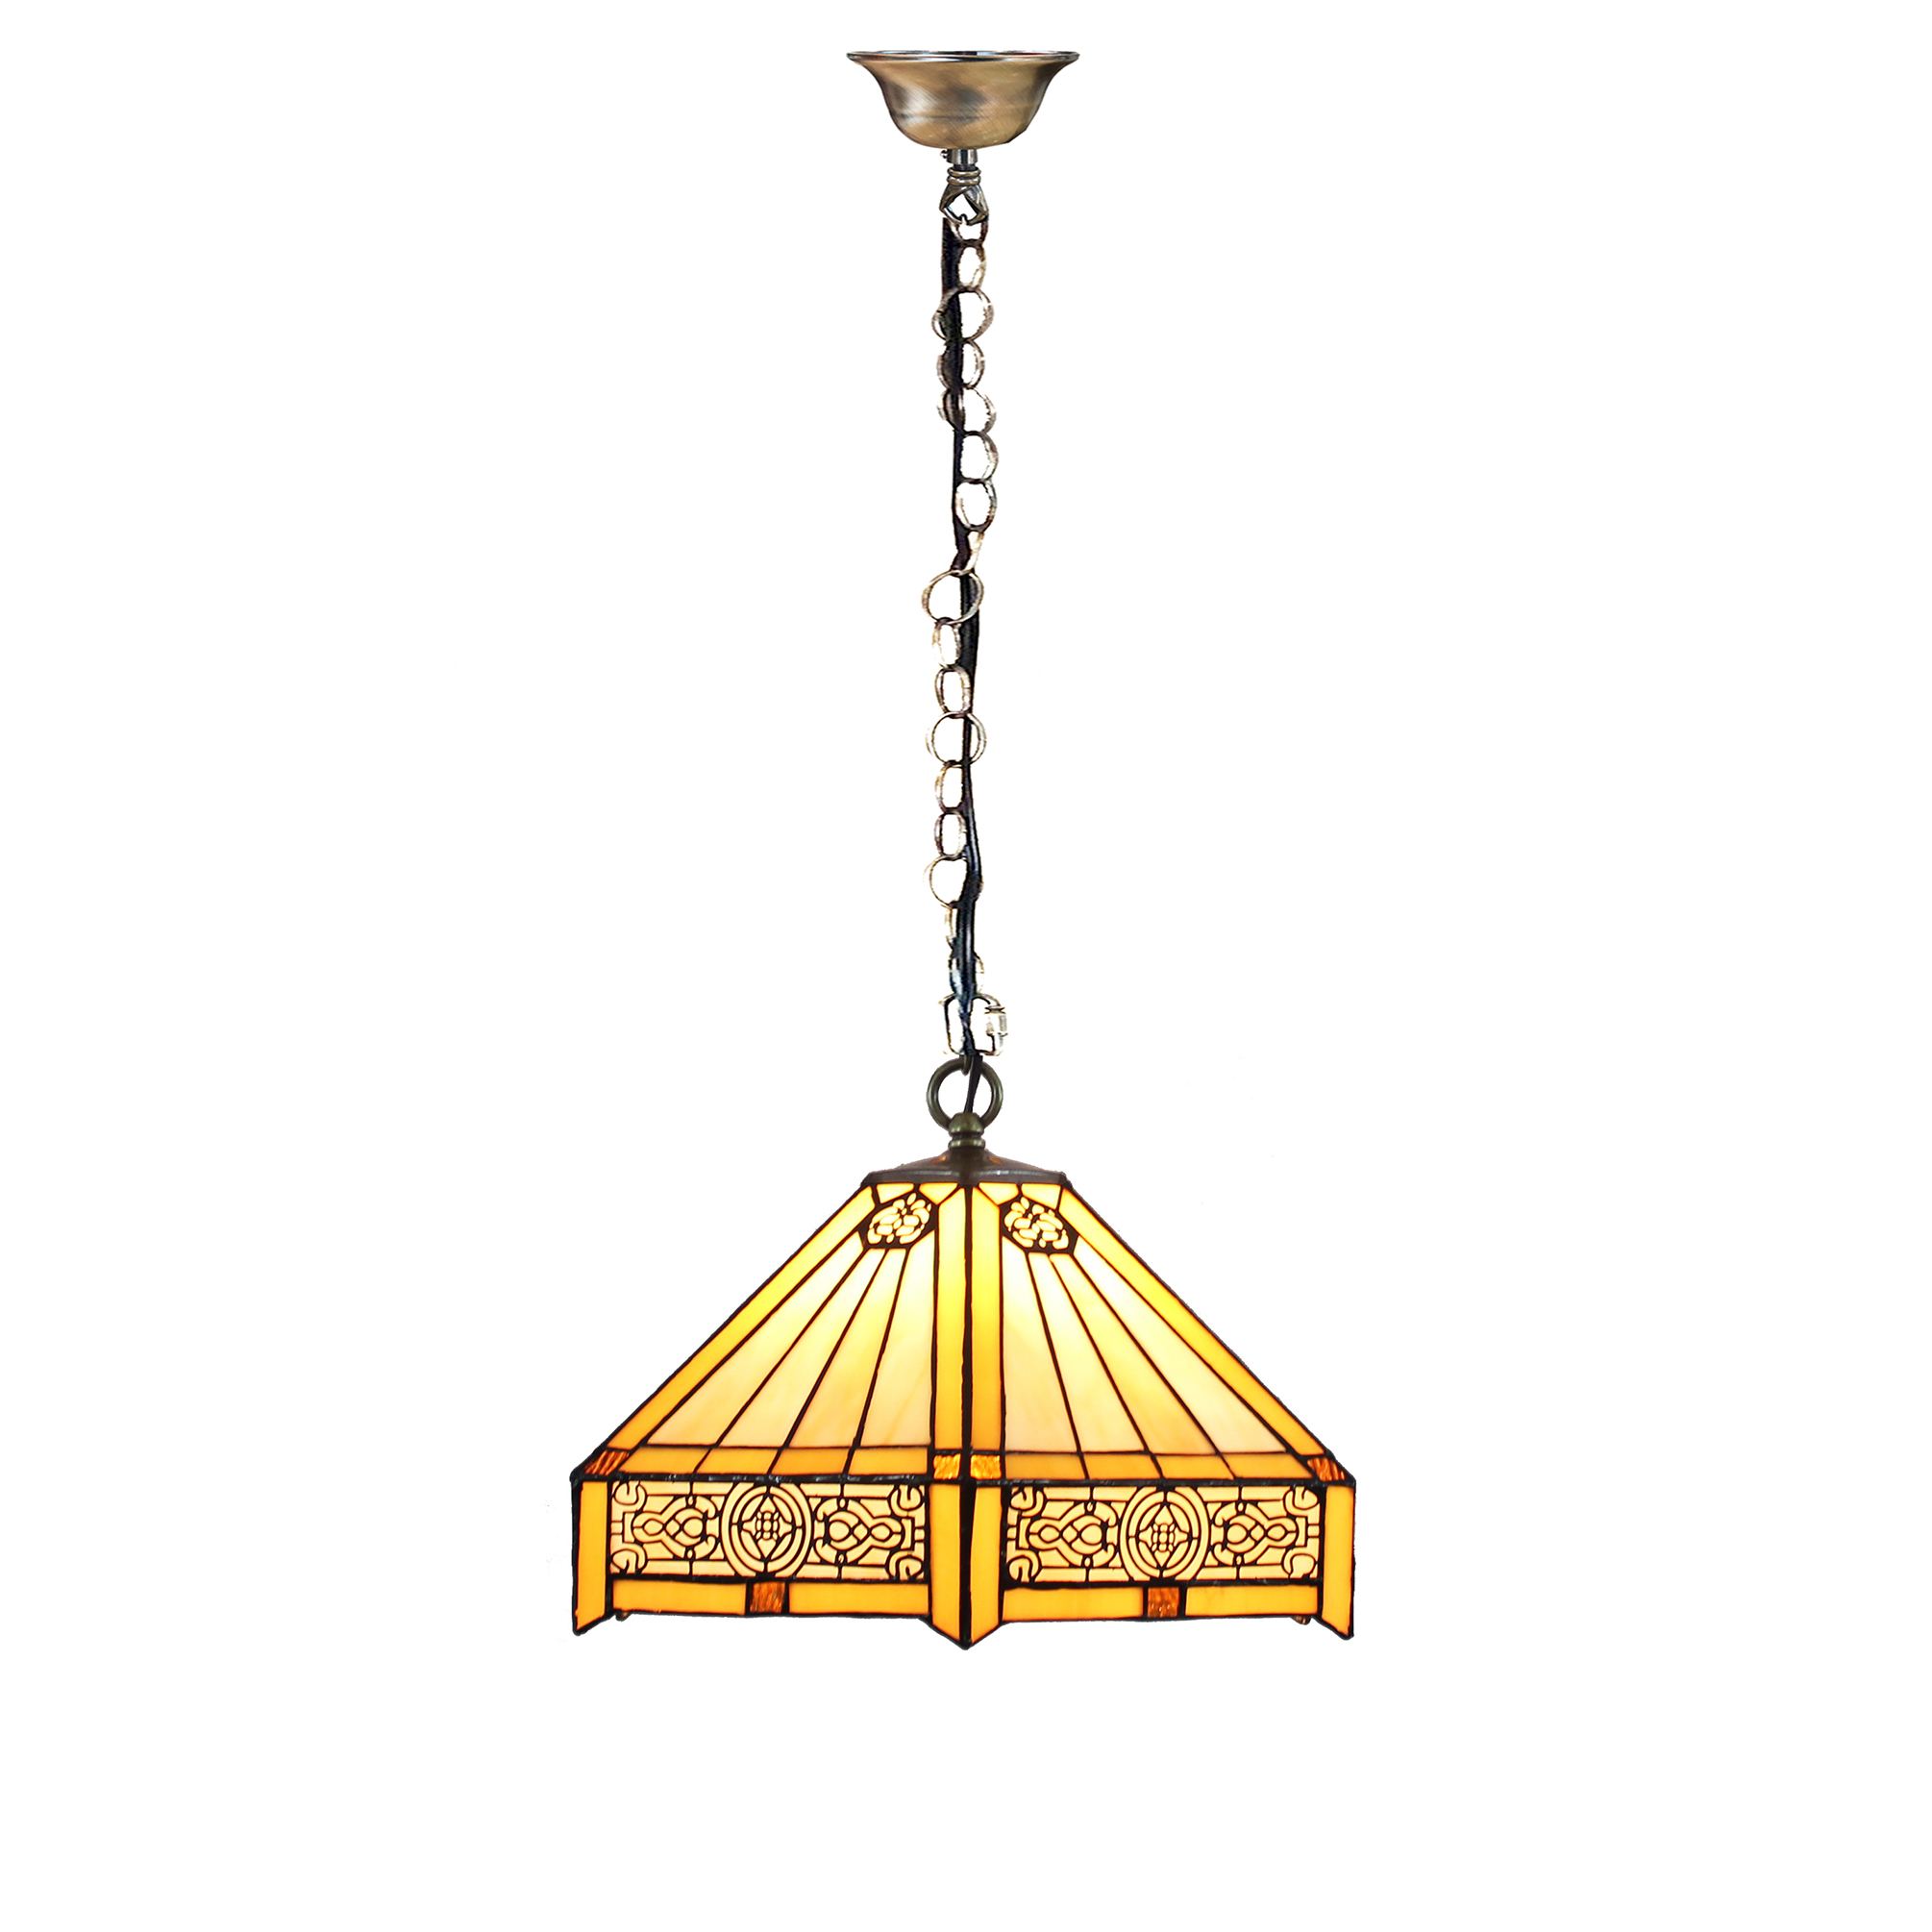 tiffany hanging bar light stained glass island lamp ceiling pendant. Black Bedroom Furniture Sets. Home Design Ideas